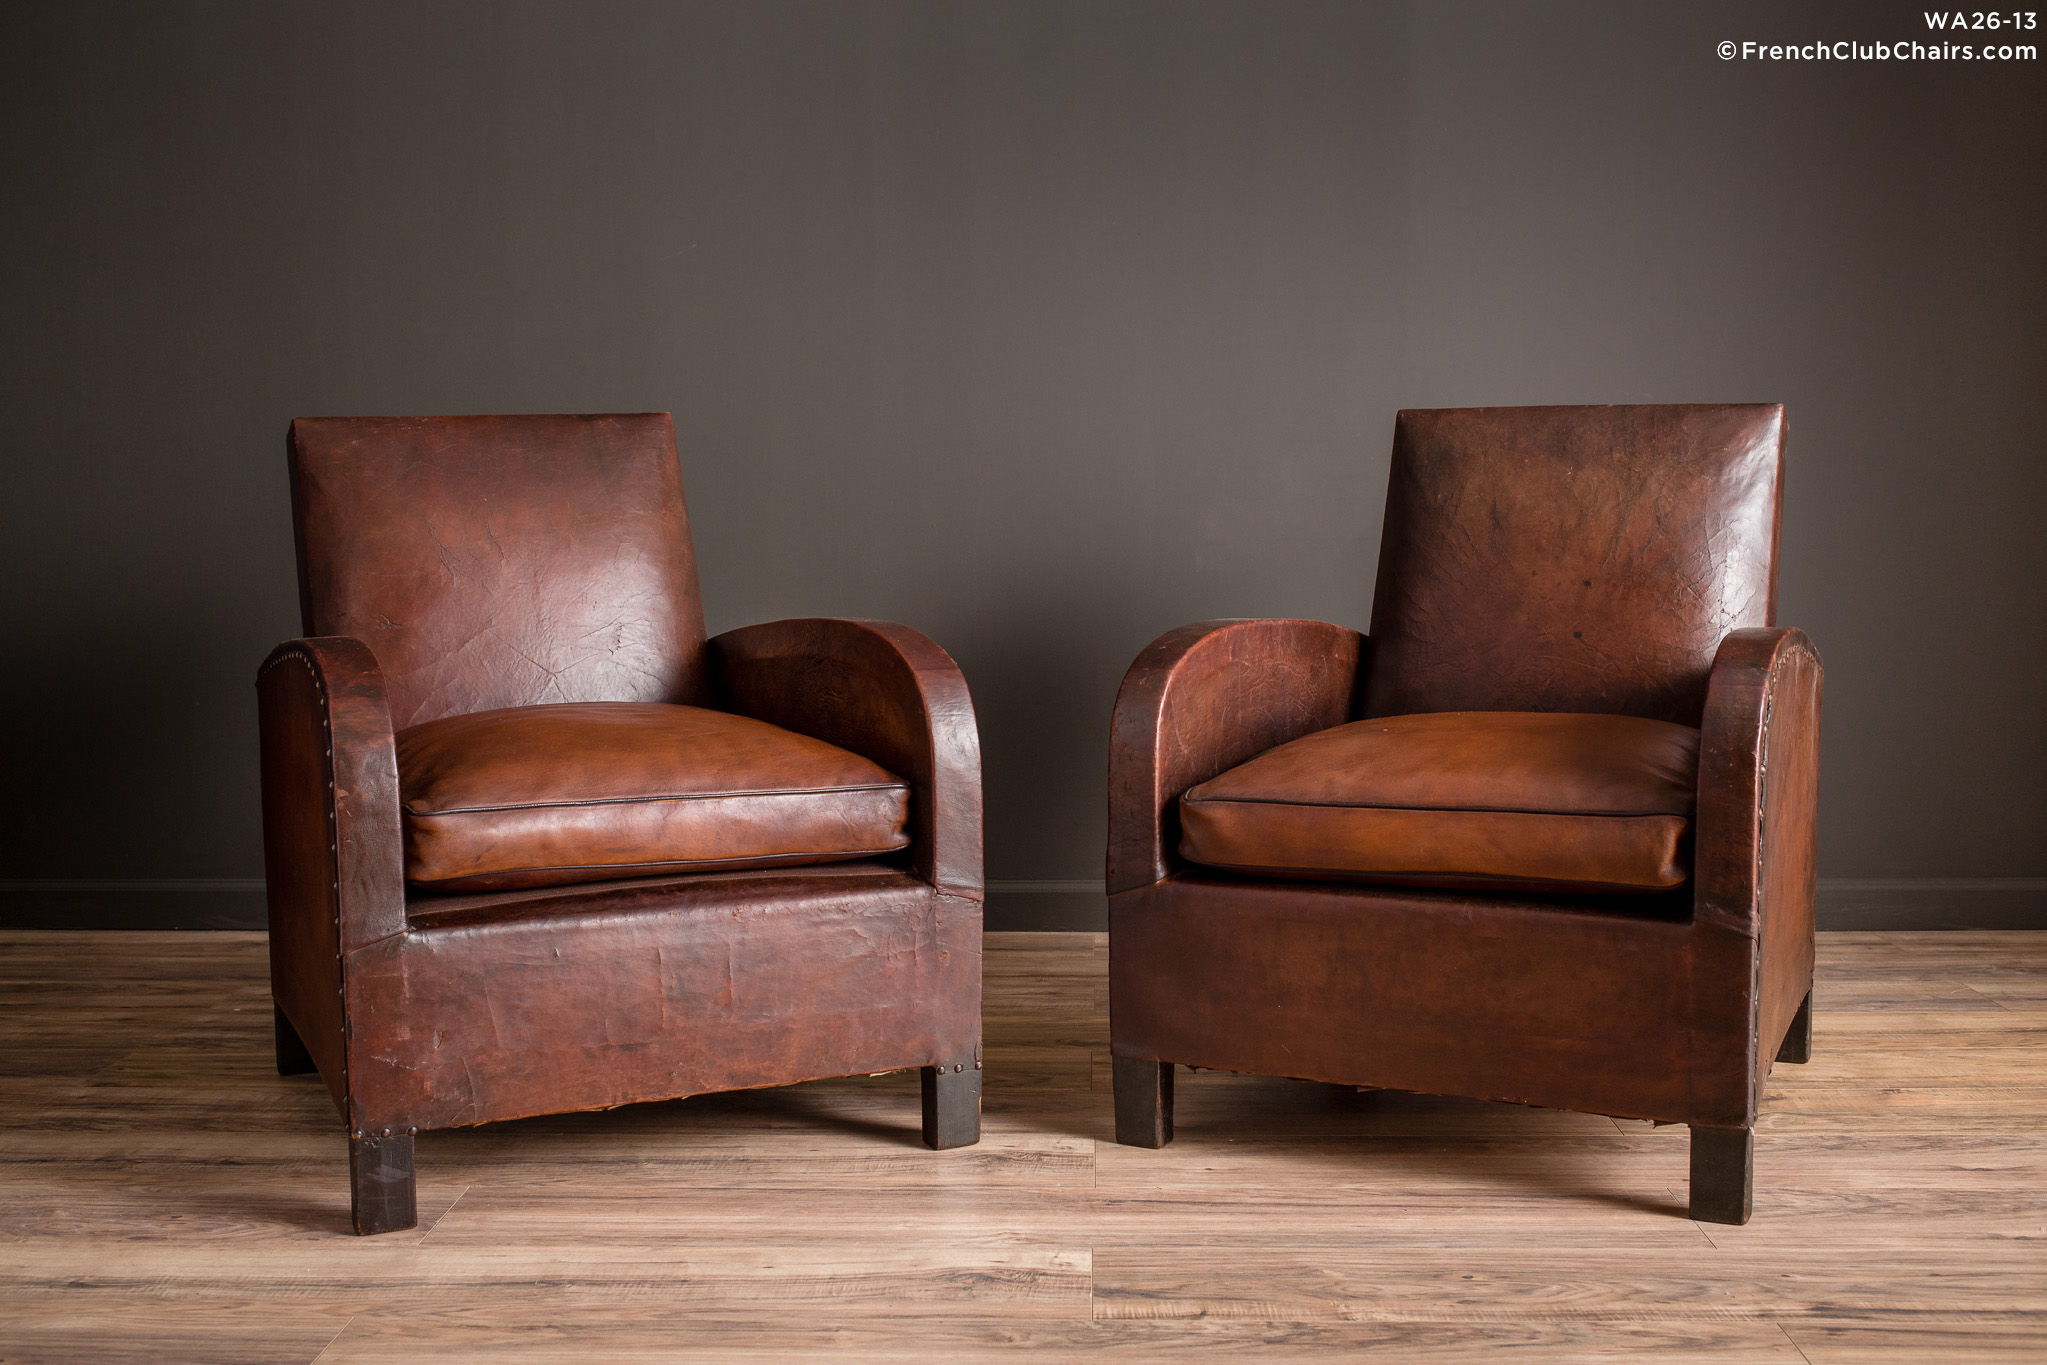 WA_26-13_Brest_Square_Pair_R_1TQ-v01-williams-antiks-leather-french-club-chair-wa_fcccom